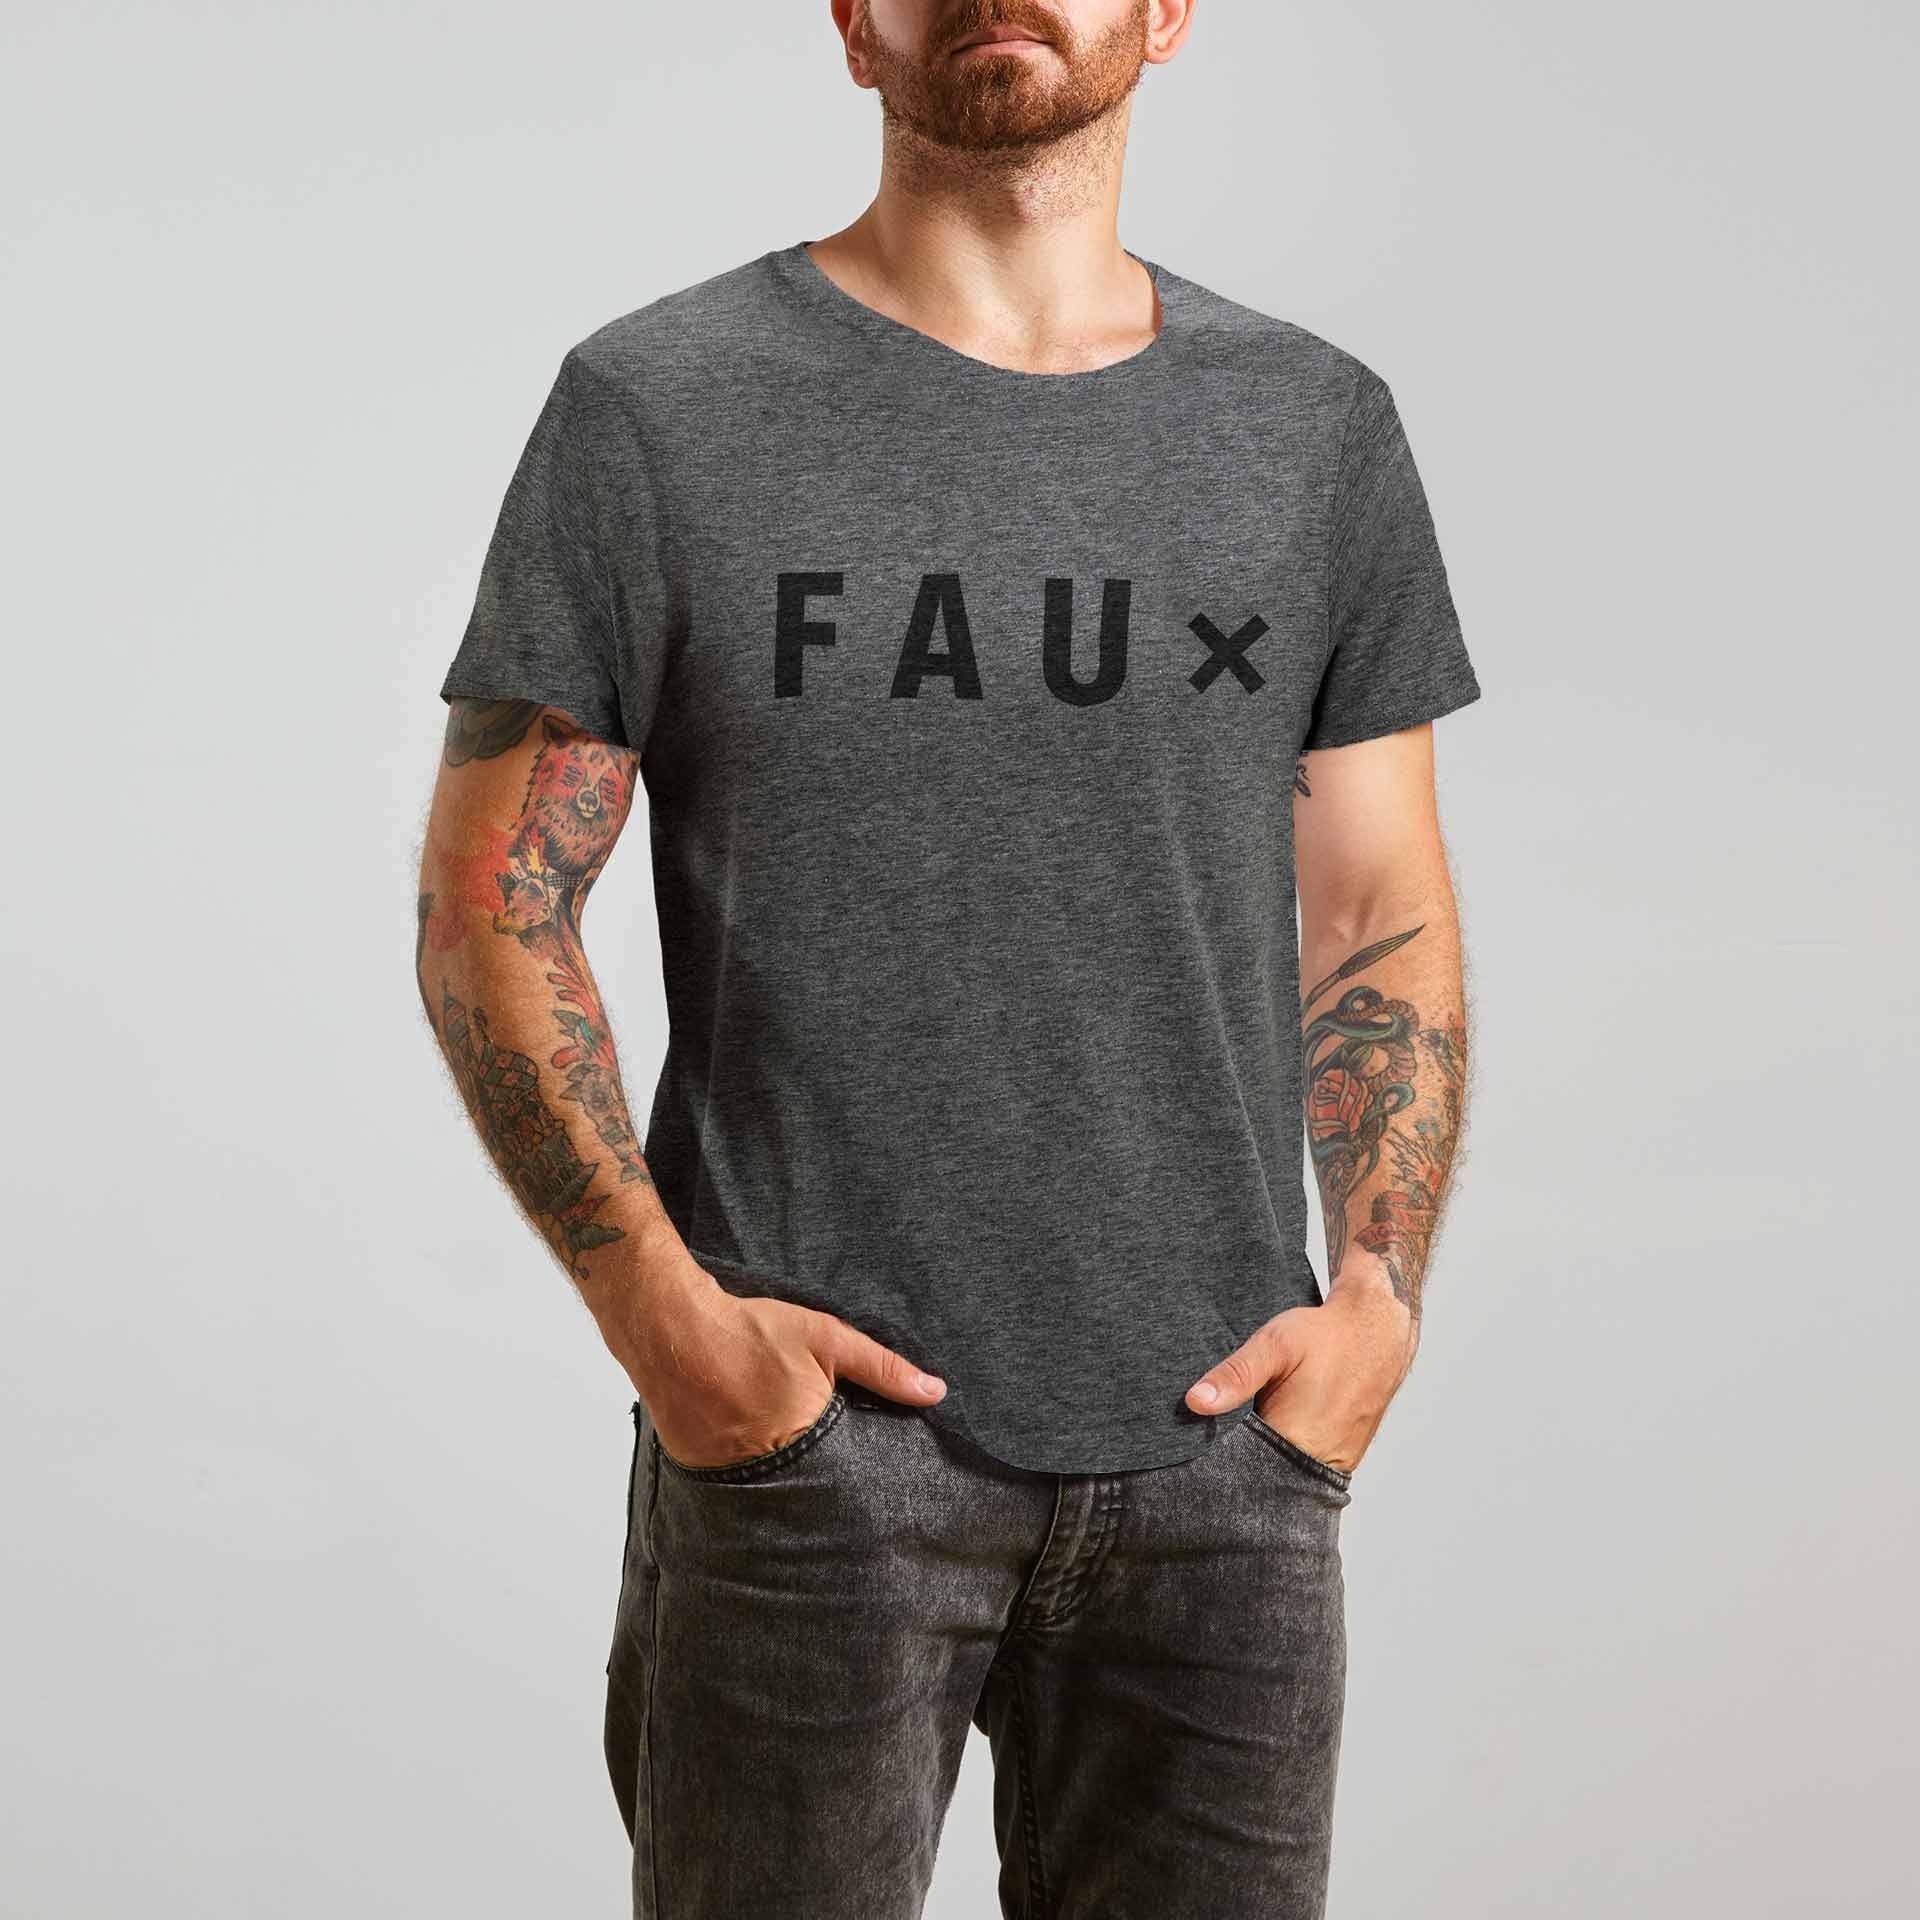 Faux - Dark grey